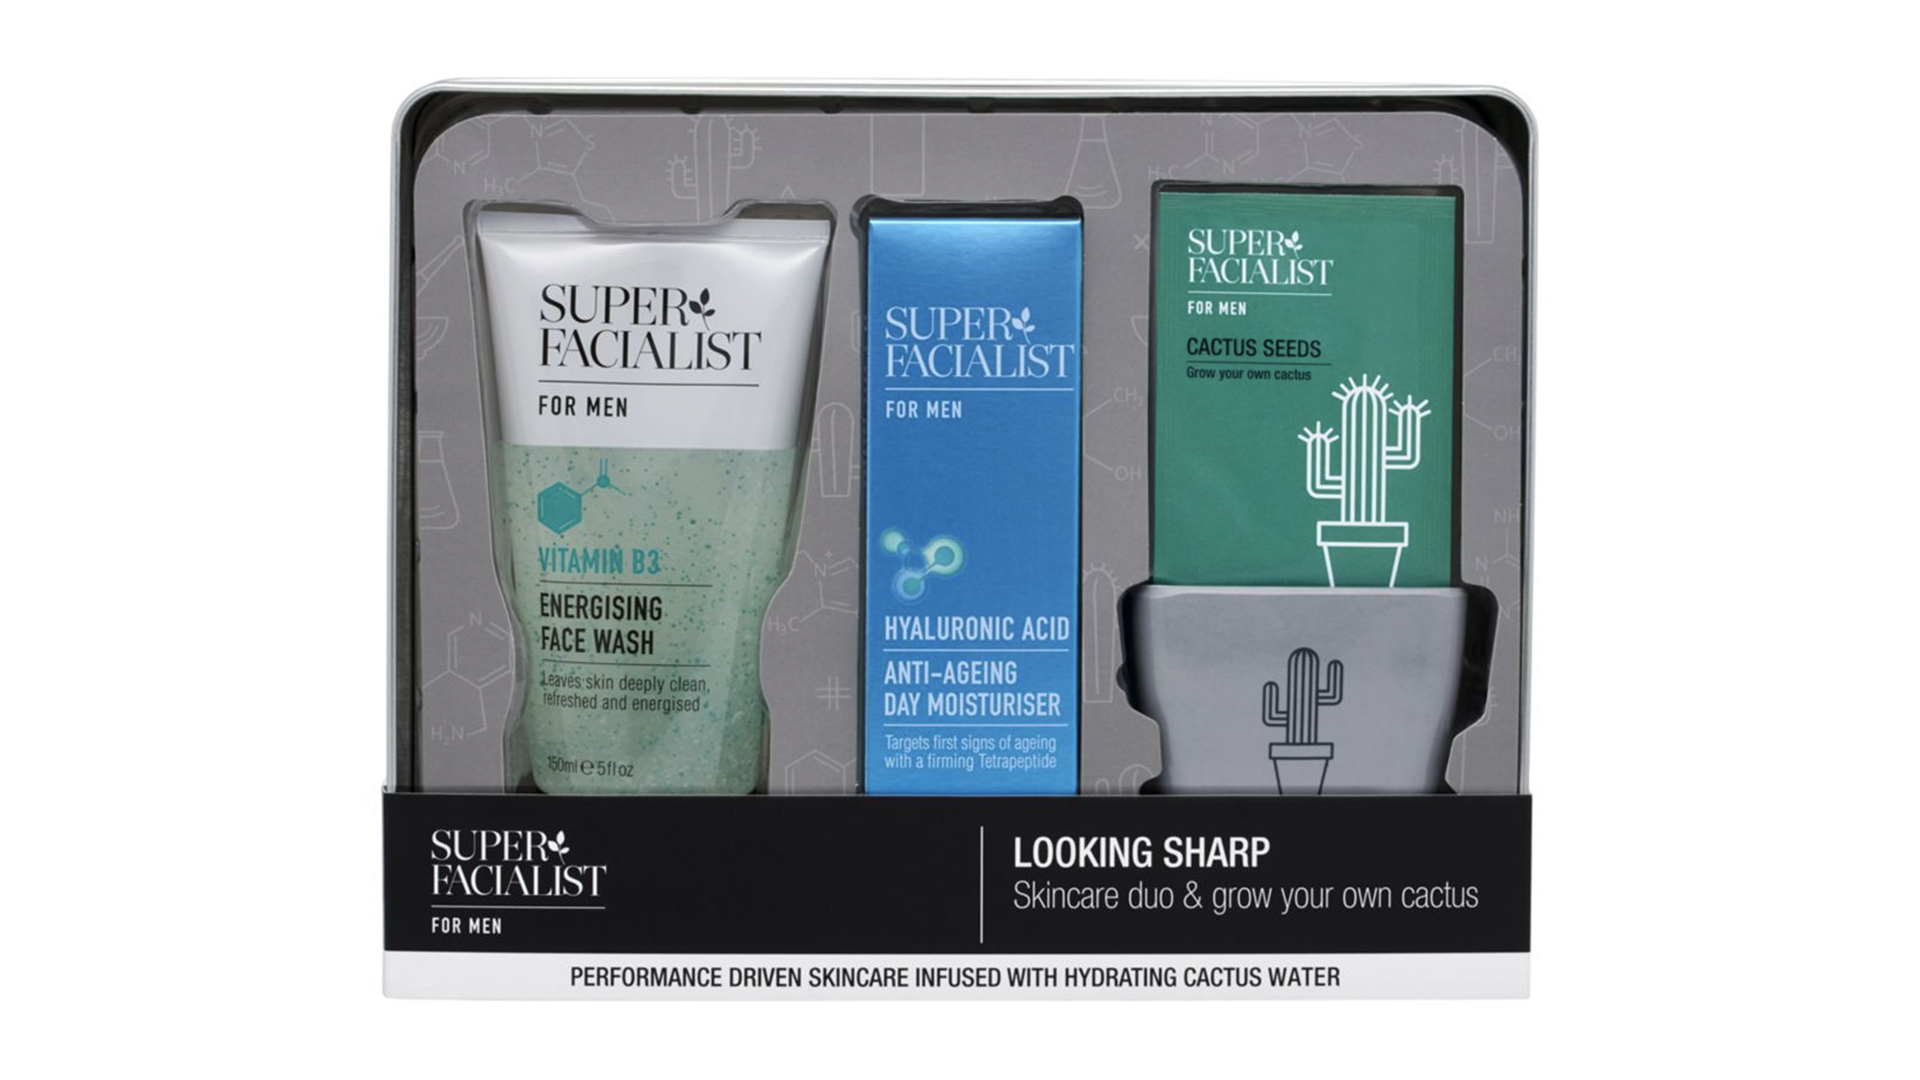 Valentine's Day Gift for Him: Superfacialist For Men Gift Set